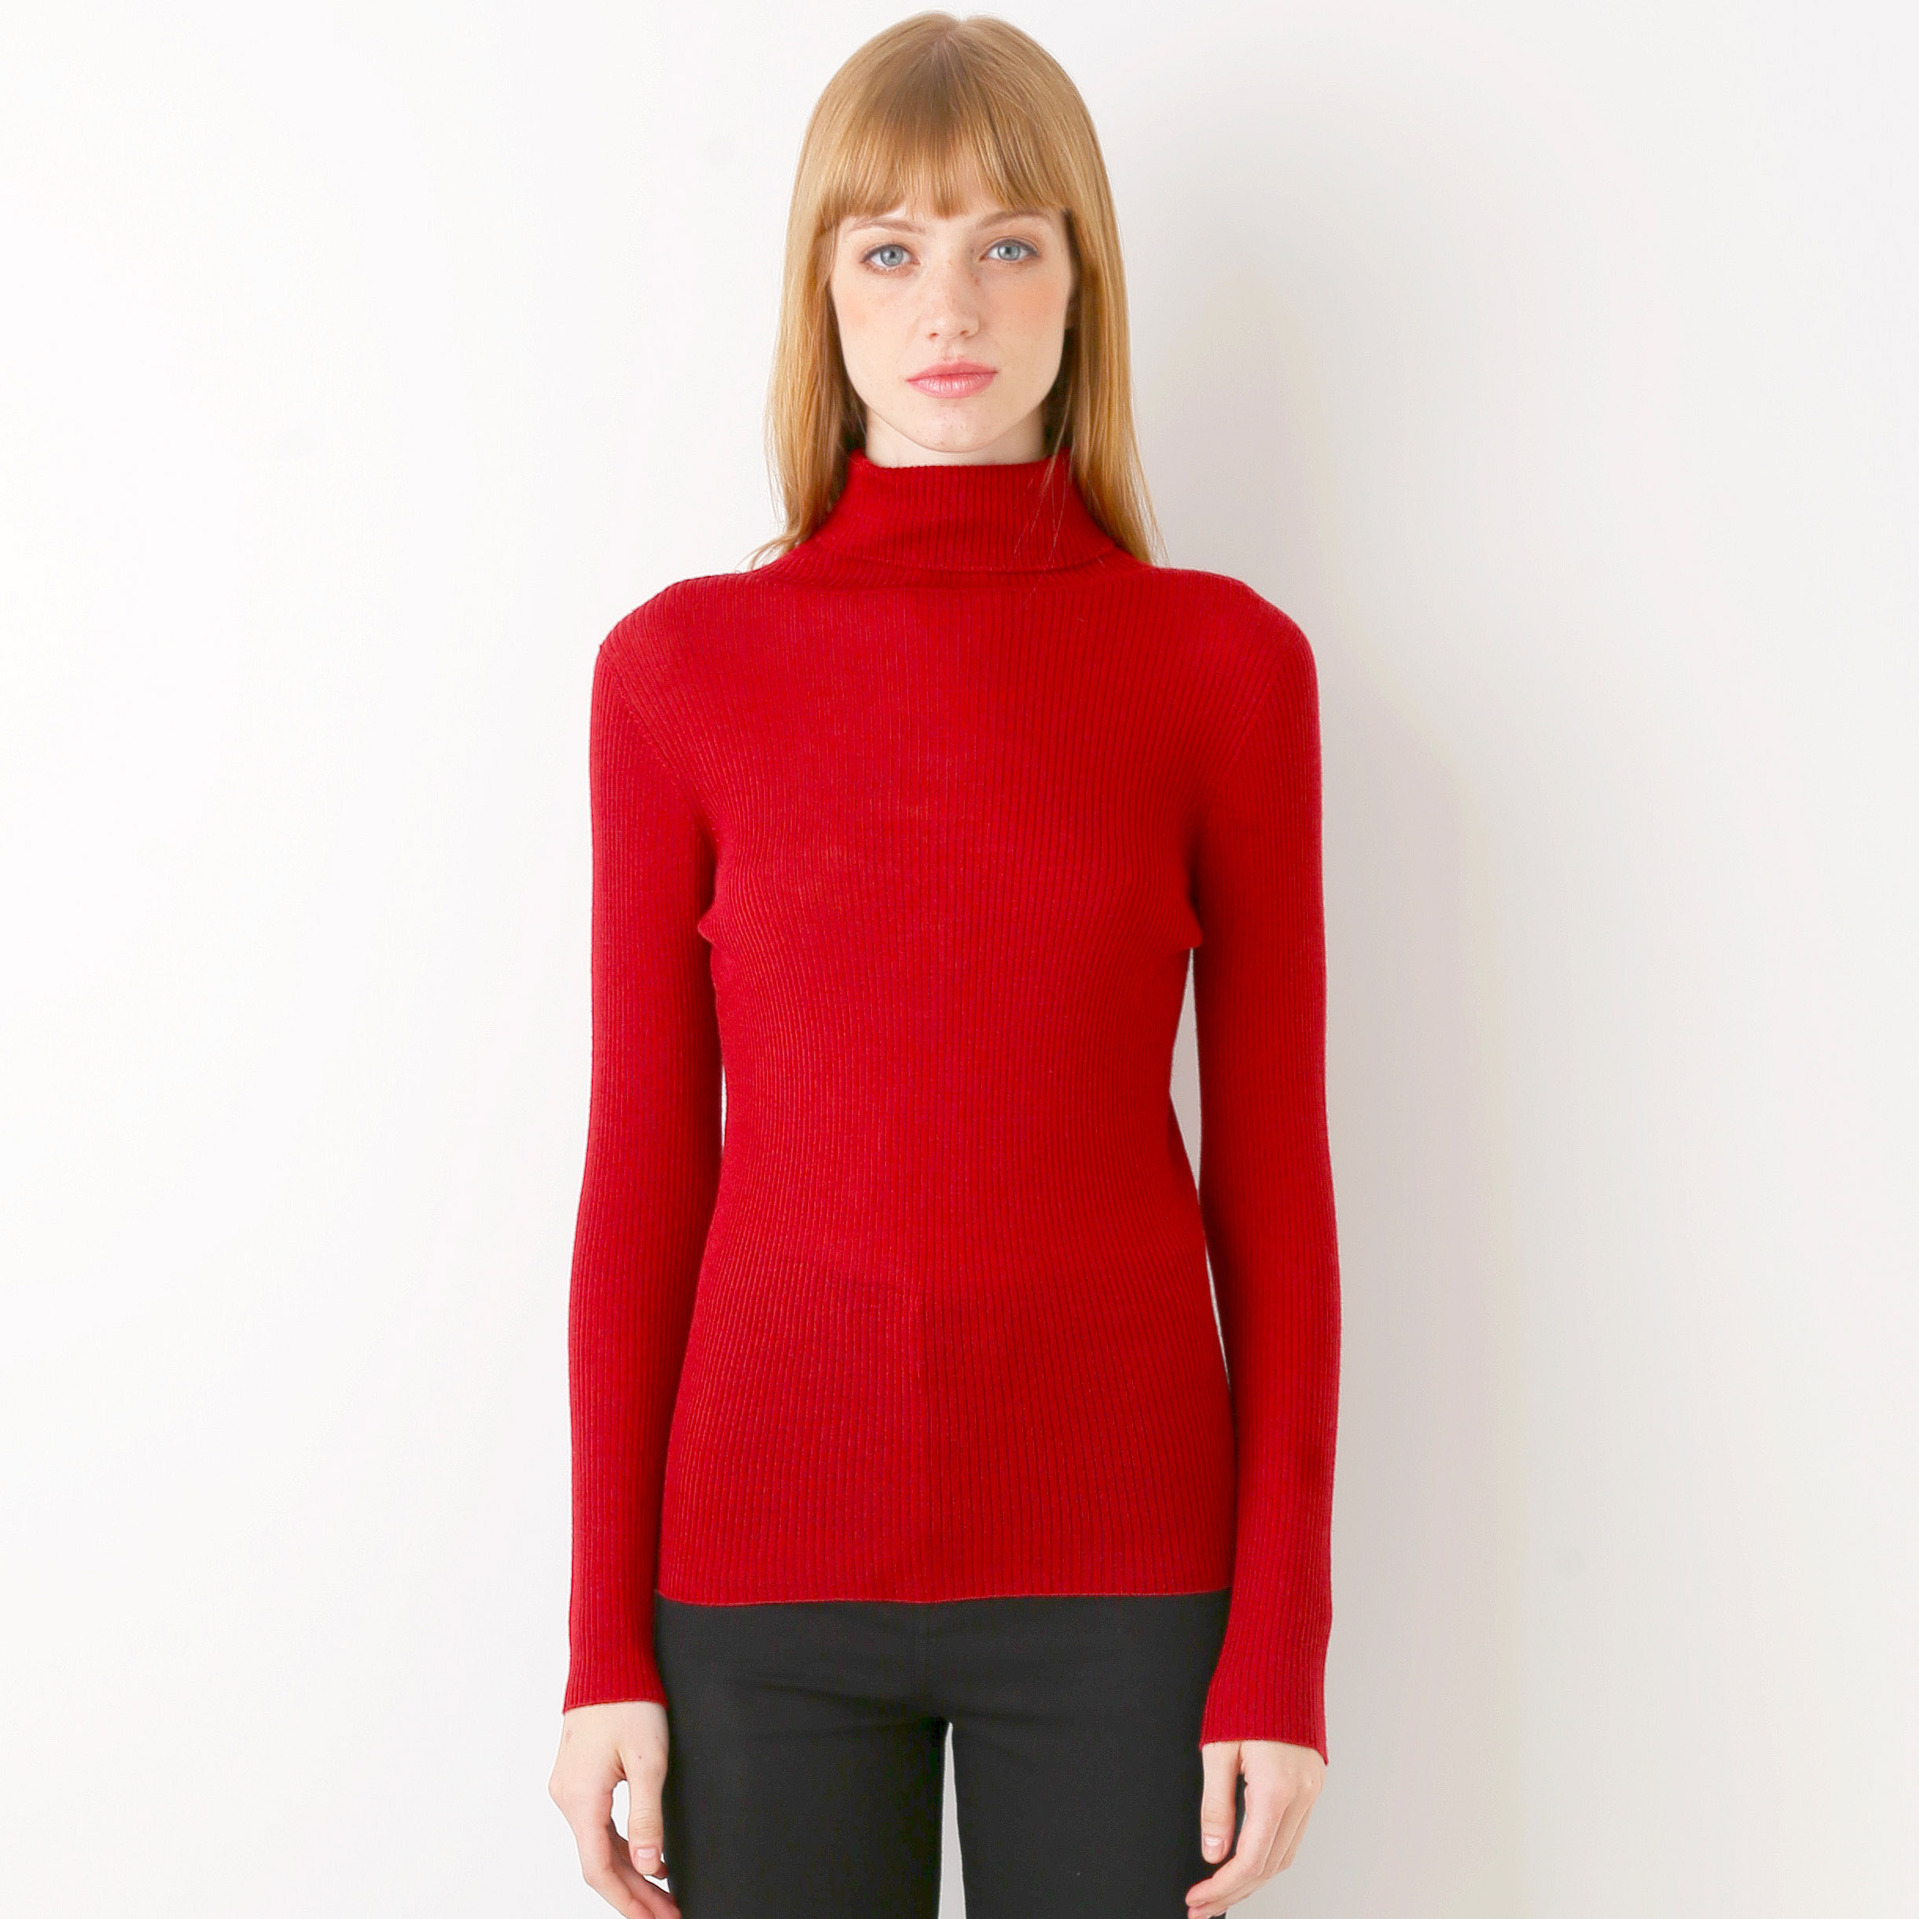 Compare Prices on Red Sweaters for Women- Online Shopping/Buy Low ...